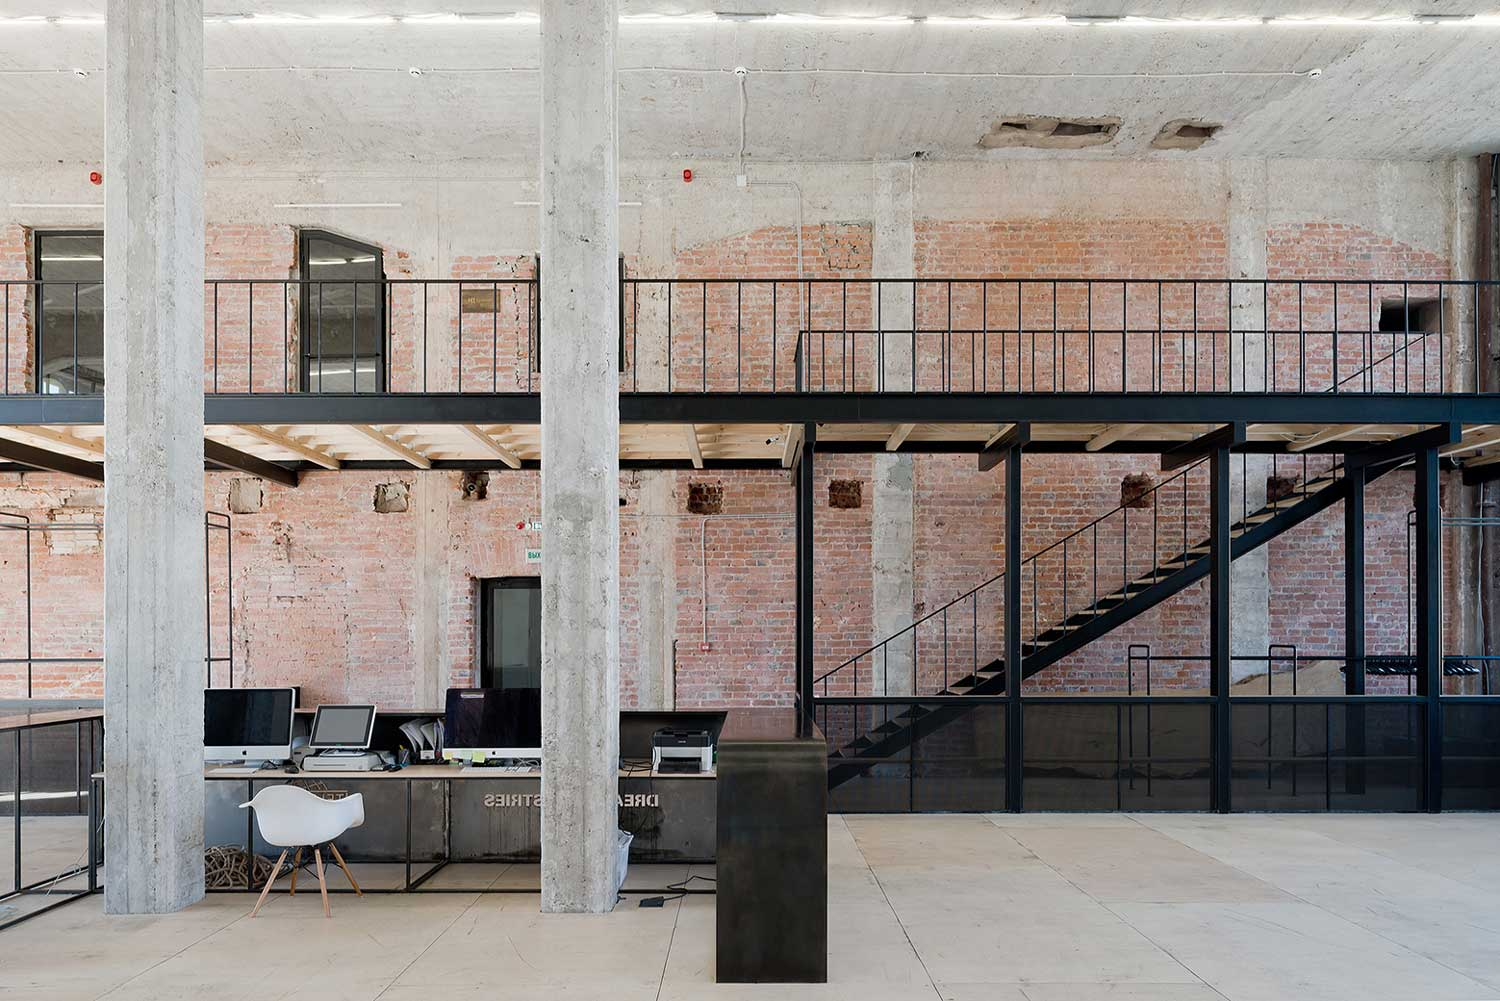 DI Telegraph by Archiproba | Yellowtrace